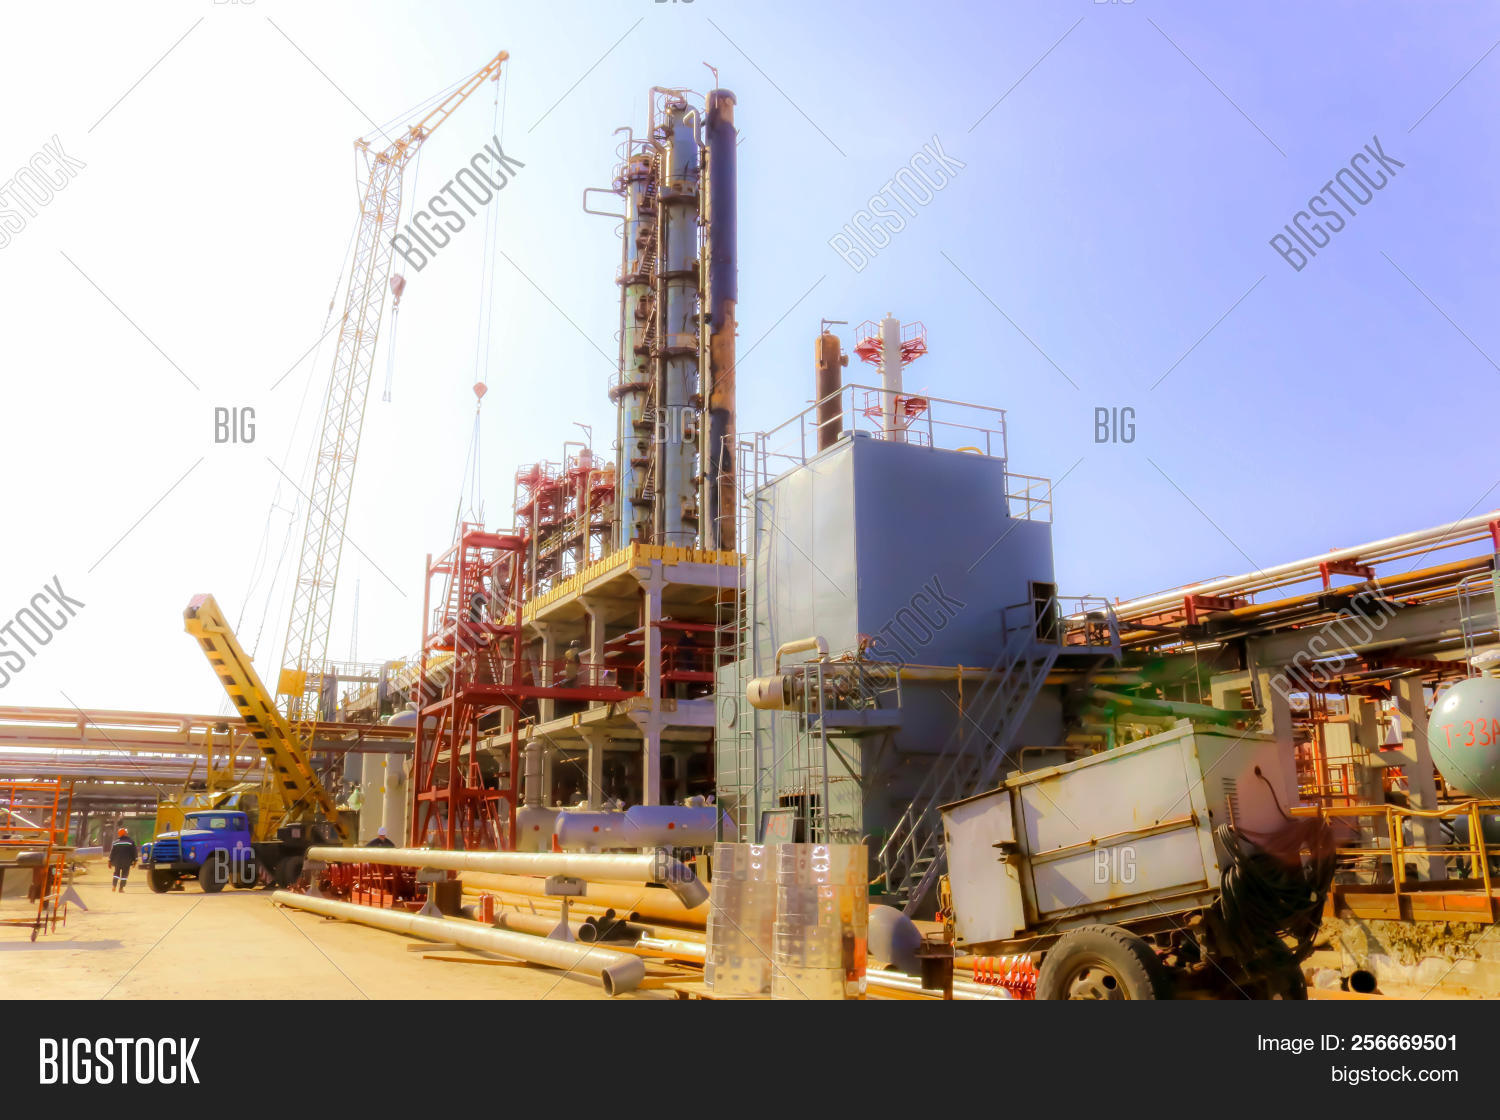 Construction Site Image & Photo (Free Trial) | Bigstock